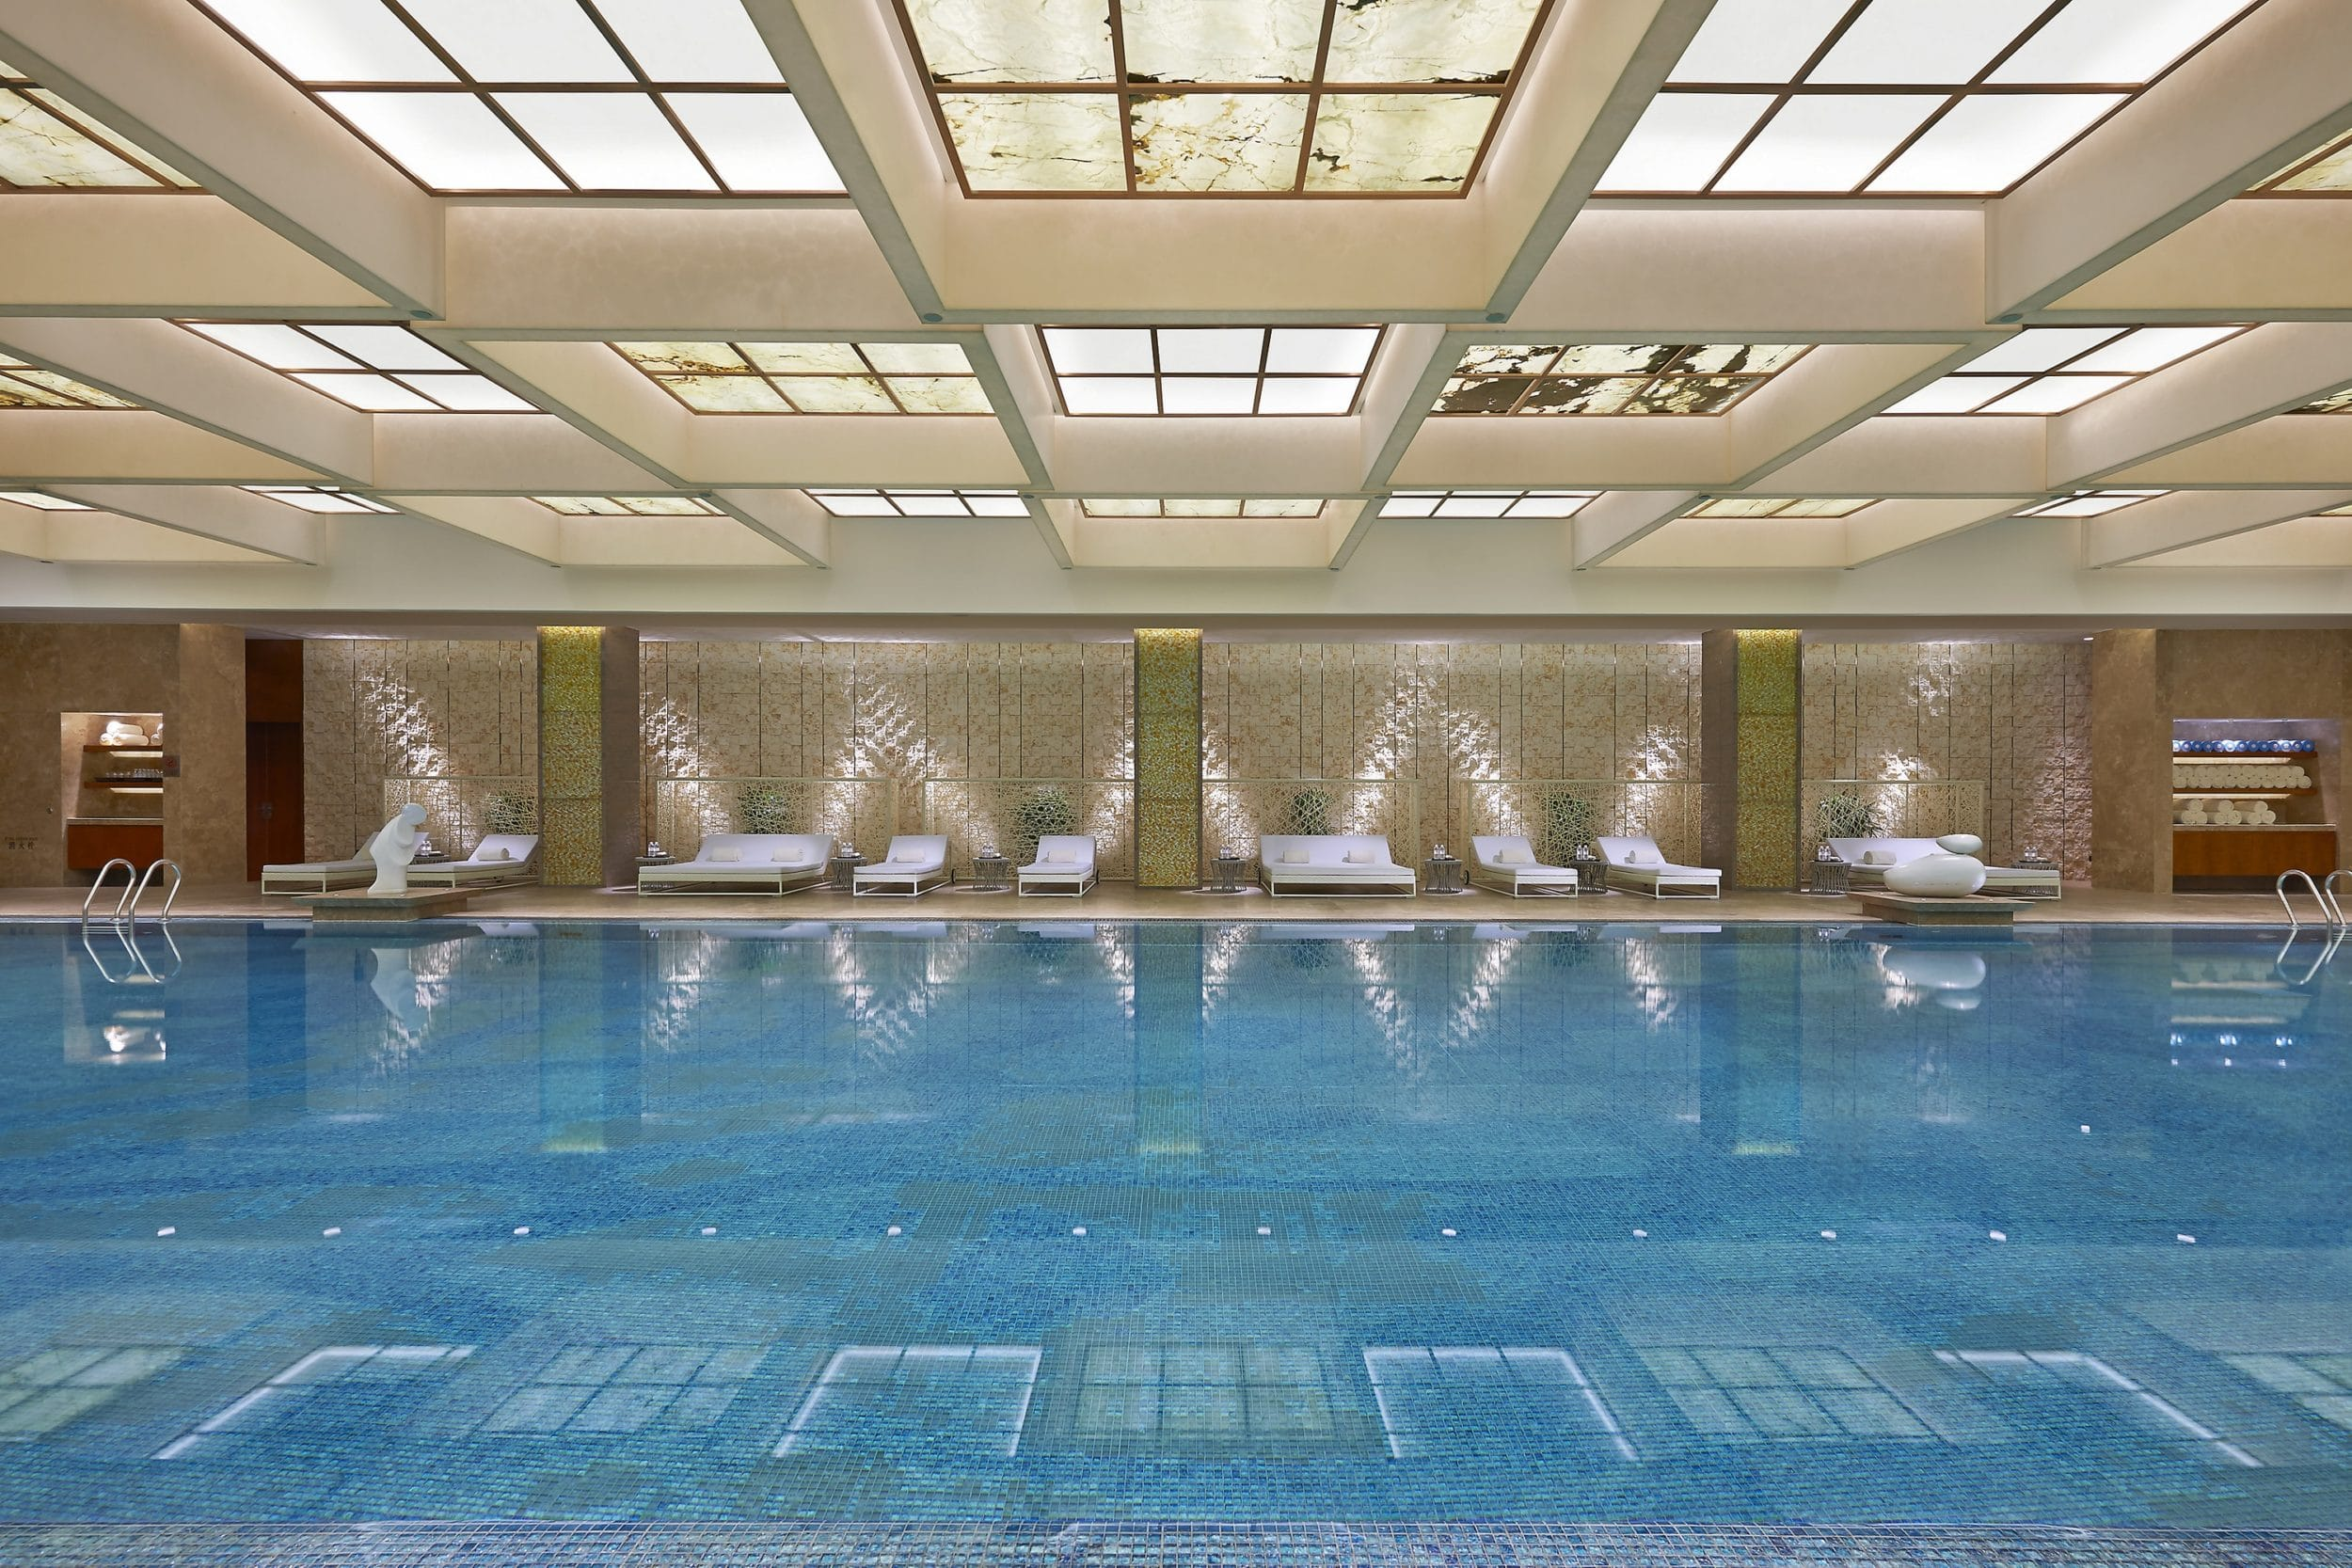 The pool at Mandarin Oriental Pudong, Shanghai, one of my favorite luxury hotels.